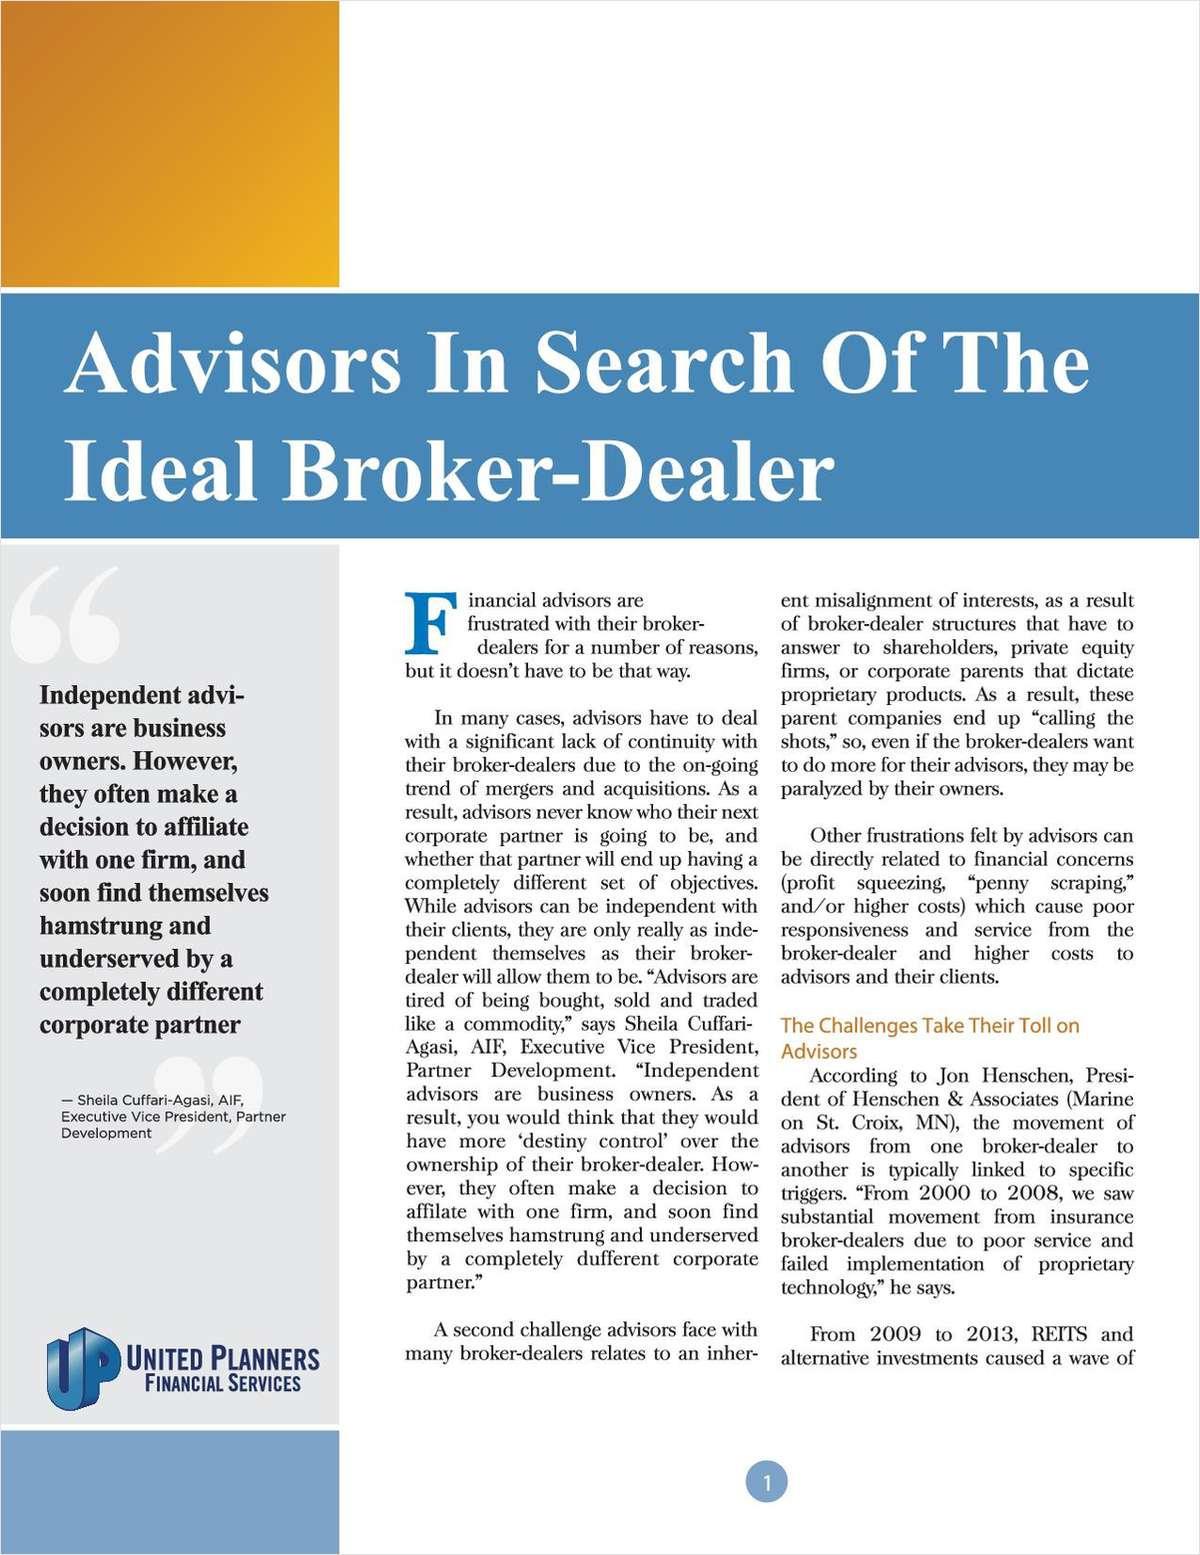 Advisors In Search of the Ideal Broker-Dealer